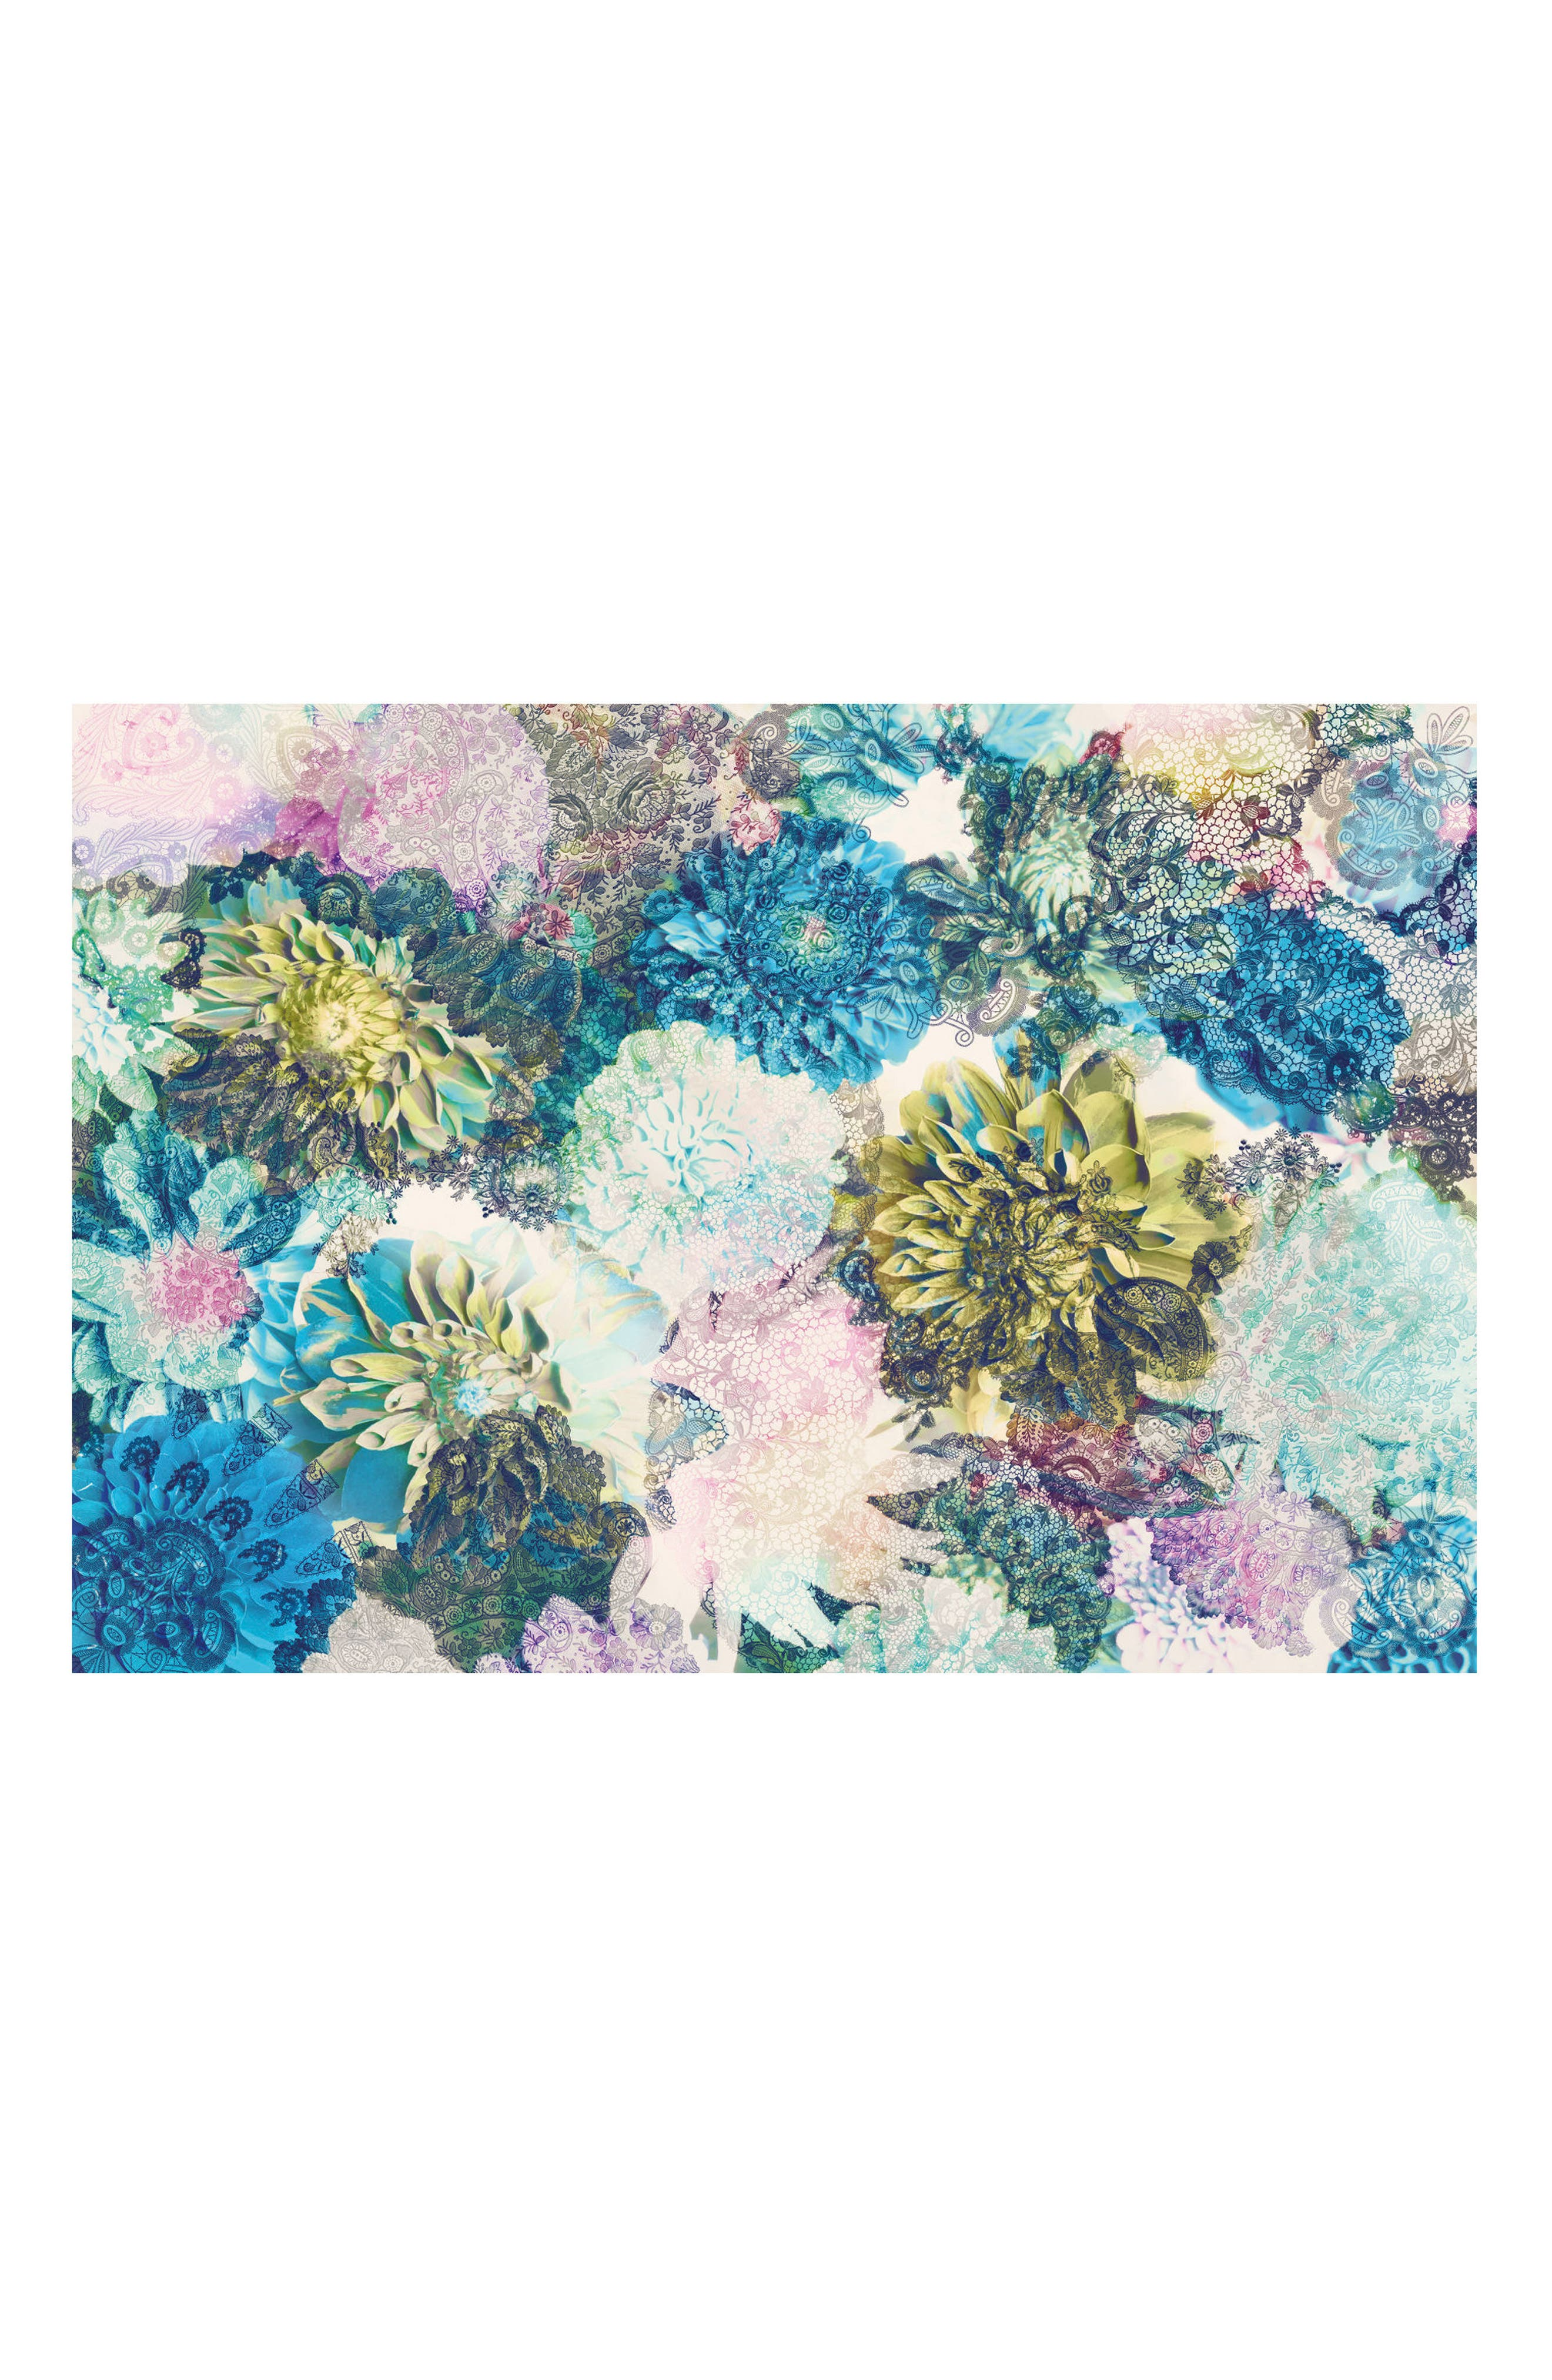 Frisky Flowers Wall Mural,                         Main,                         color, 400